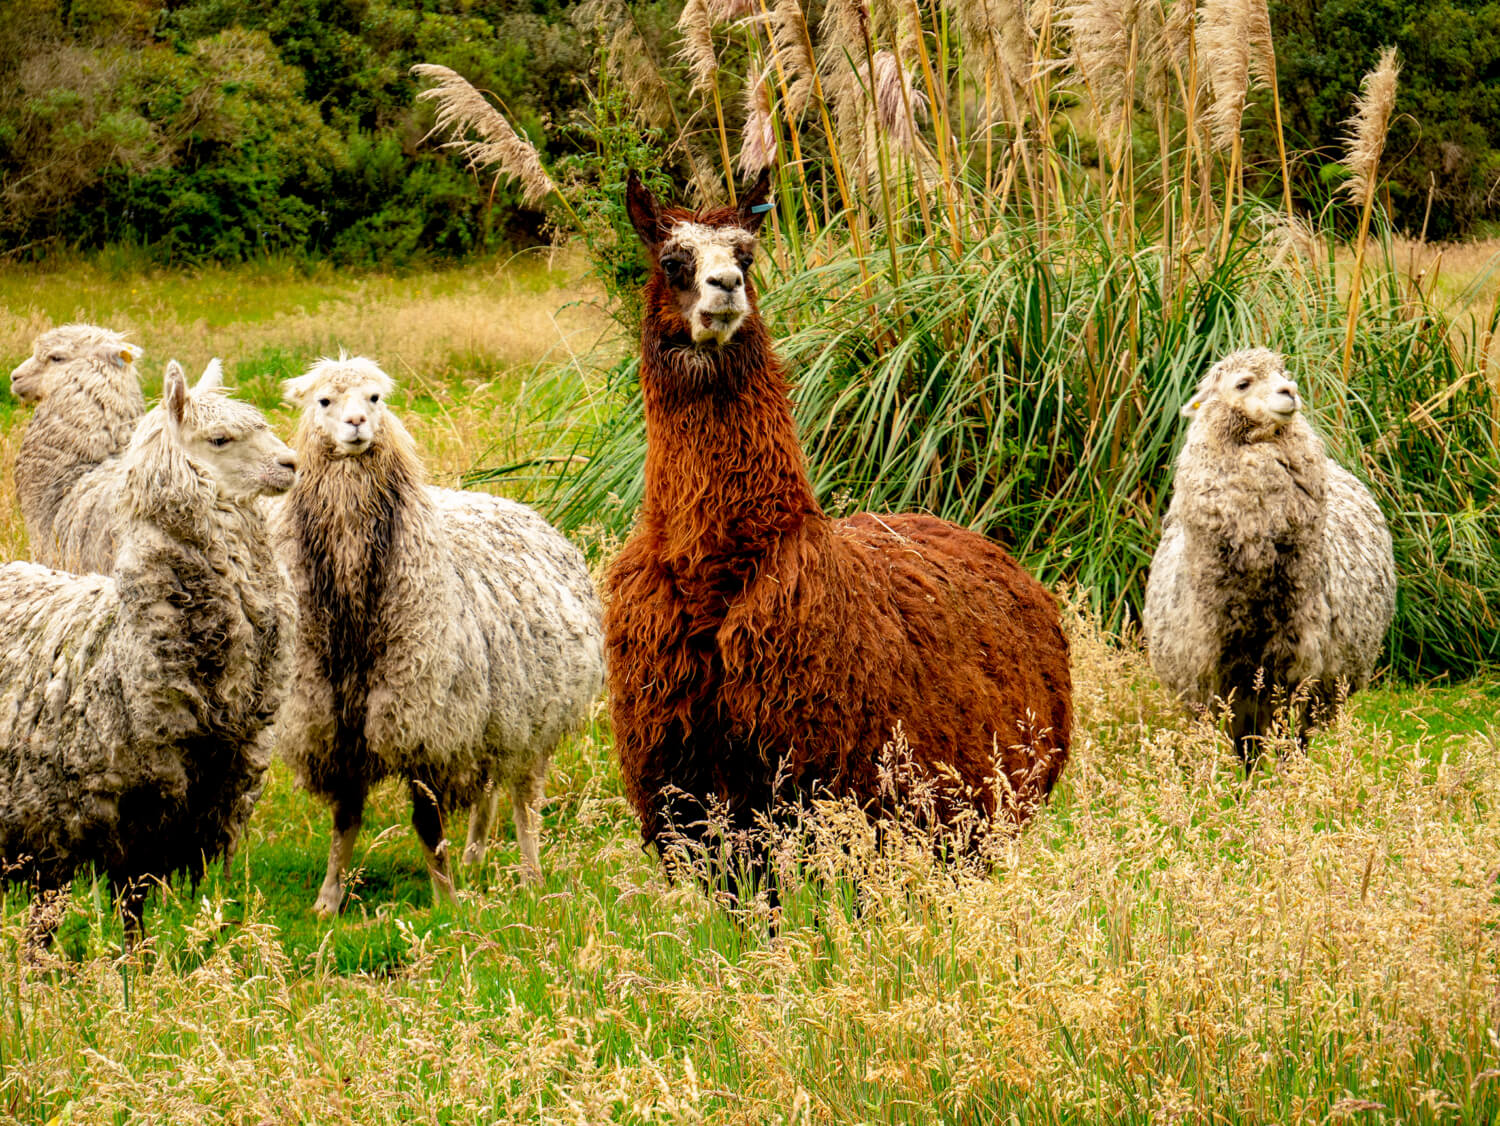 Llamas in Lower Cajas National Park near Cuenca Ecuador